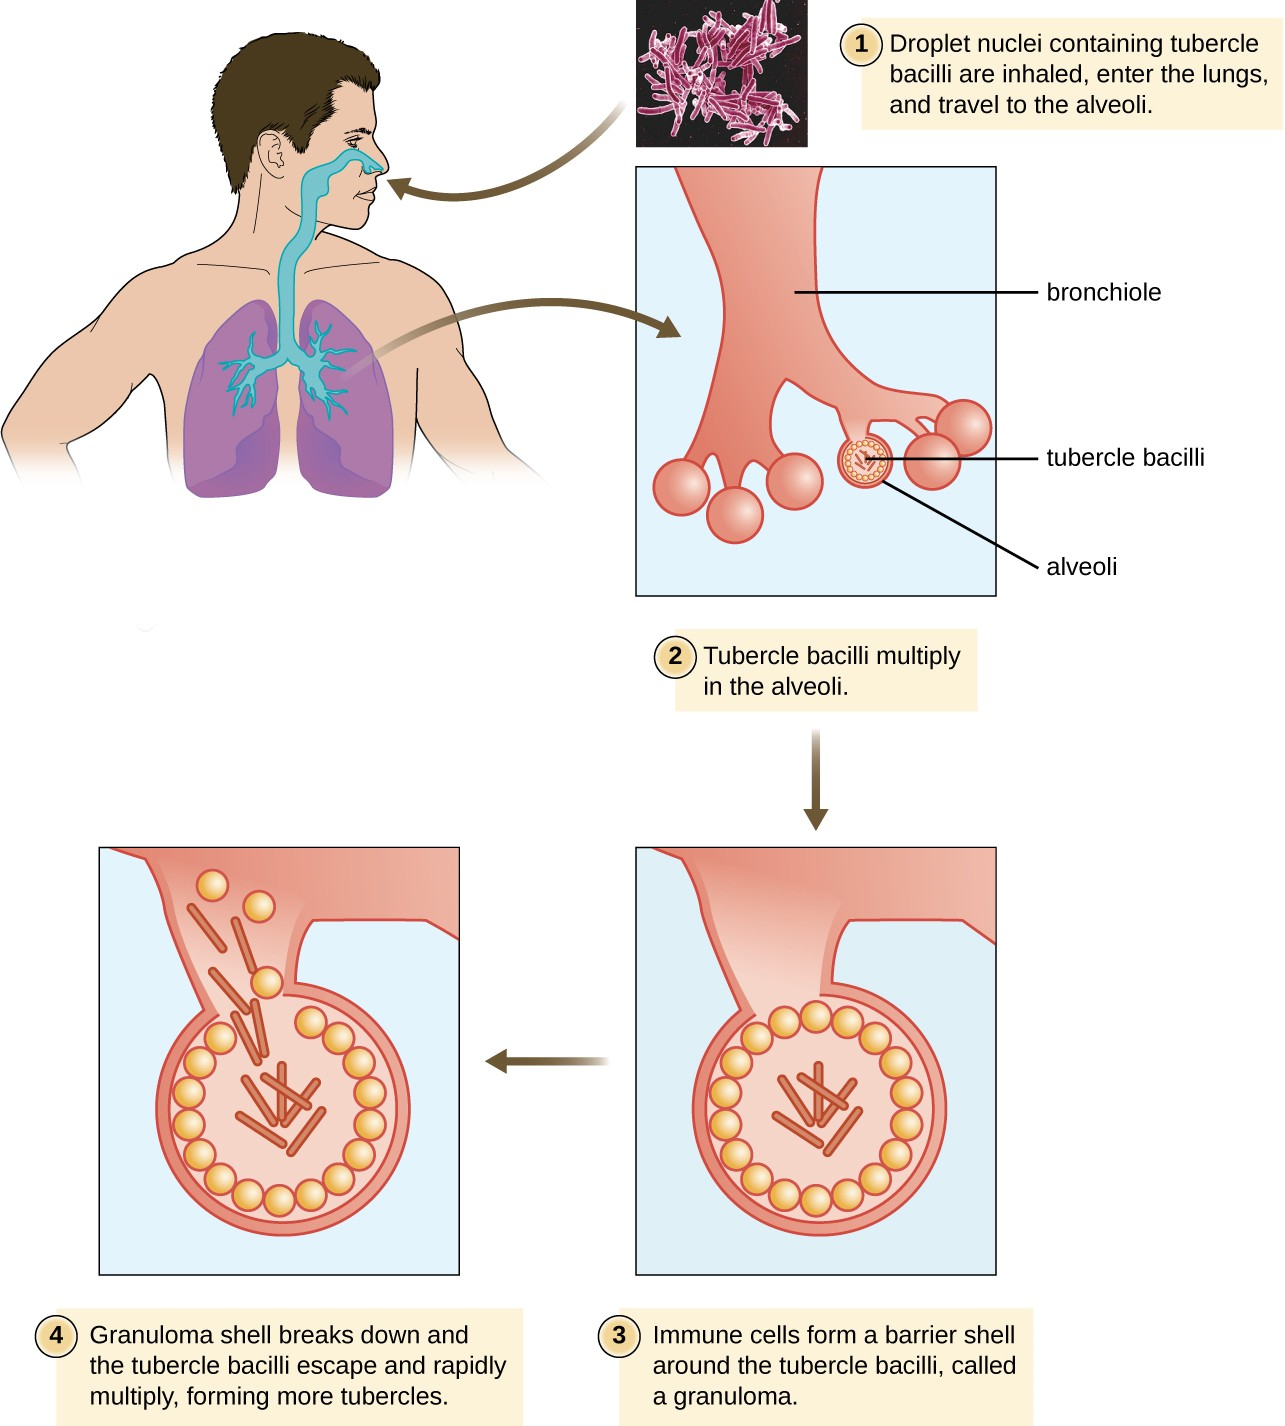 "In the infectious cycle of tuberculosis, the immune response of most infected individuals (approximately 90%) results in the formation of tubercles in which the infection is walled off.<a class=""footnote"" title=""G. Kaplan et al. ""Mycobacterium tuberculosis Growth at the Cavity Surface: A Microenvironment with Failed Immunity."" Infection and Immunity 71 no.12 (2003):7099–7108."" id=""return-footnote-410-1"" href=""#footnote-410-1"" aria-label=""Footnote 1""><sup class=""footnote"">[1]</sup></a> The remainder will suffer progressive primary tuberculosis. The sequestered bacteria may be reactivated to form secondary tuberculosis in immunocompromised patients at a later time."